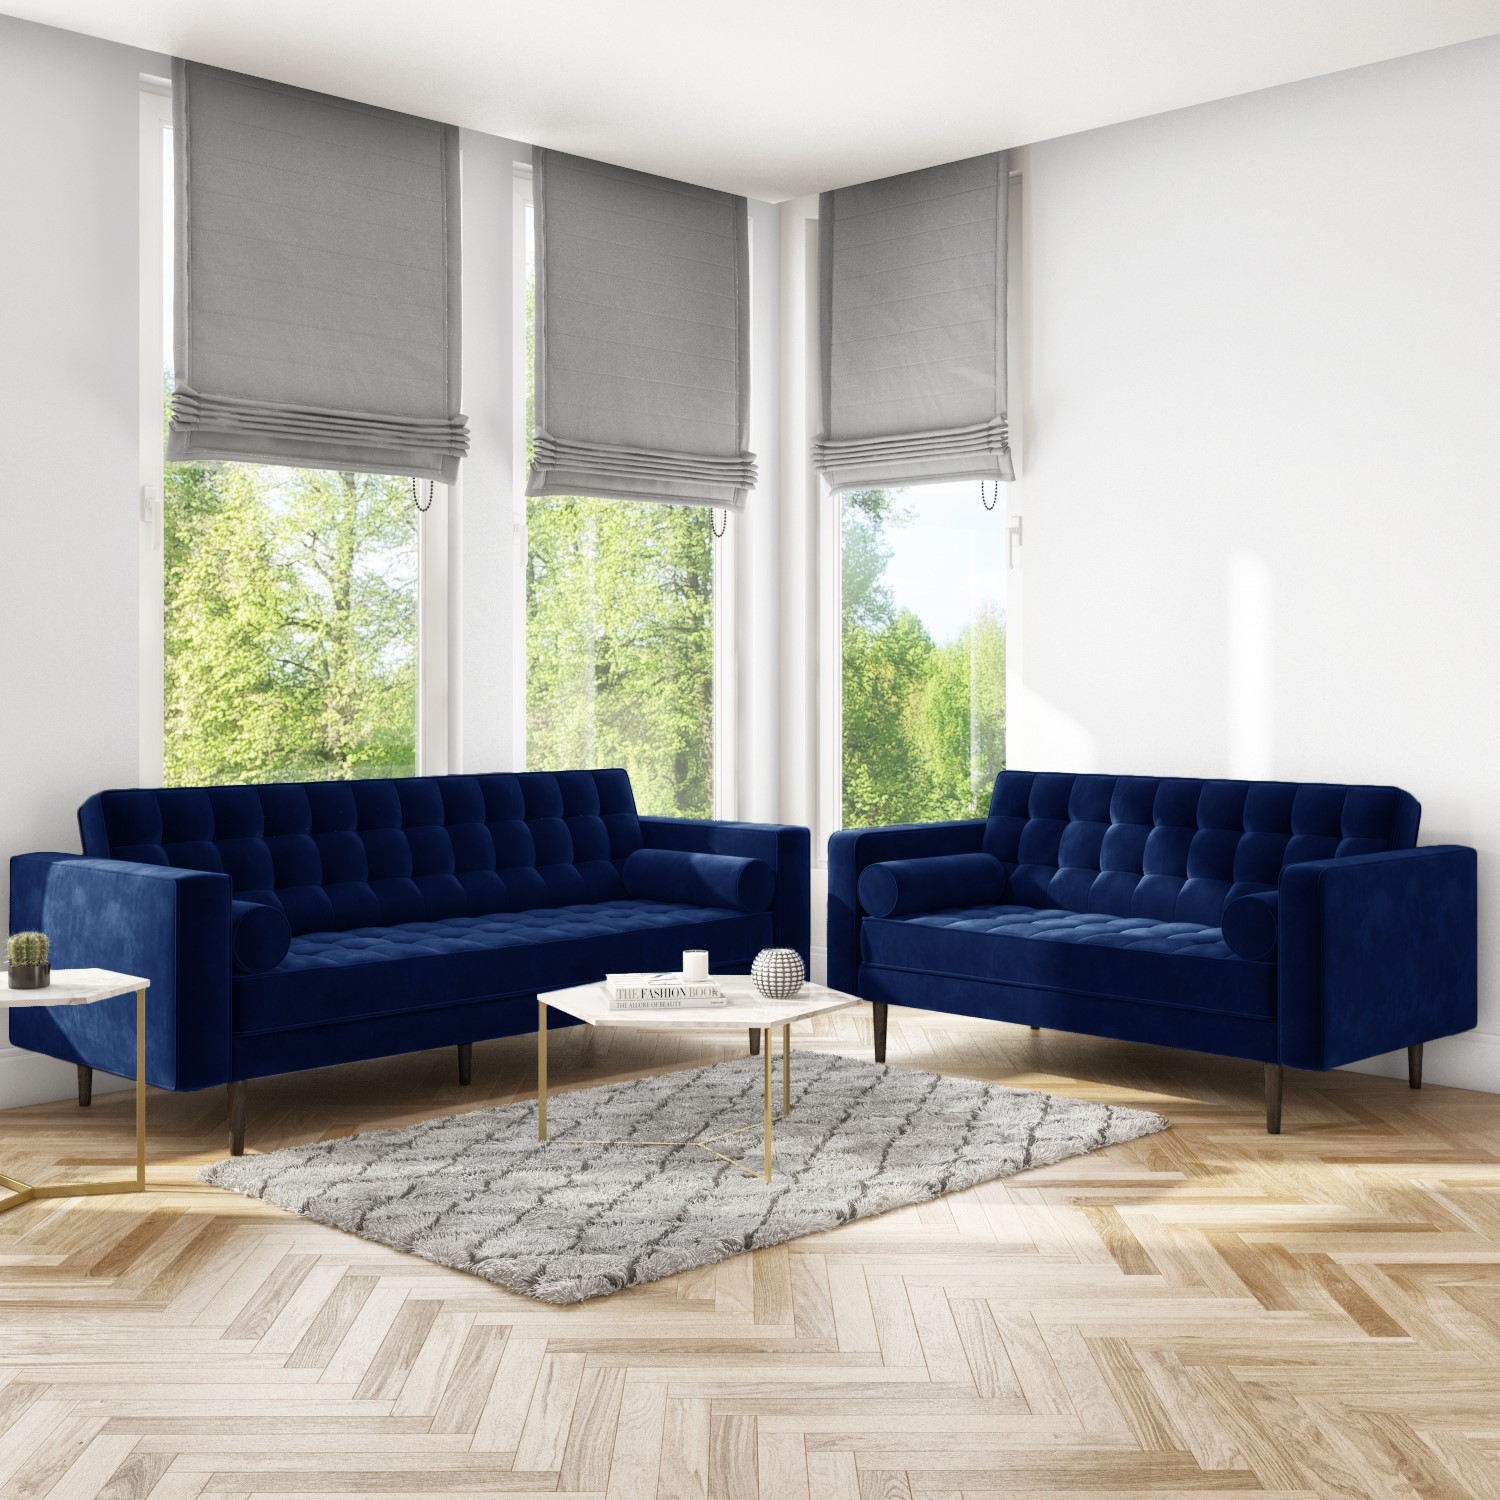 Picture of: Sofa Set With 3 2 Seater In Blue Velvet Elba Furniture123